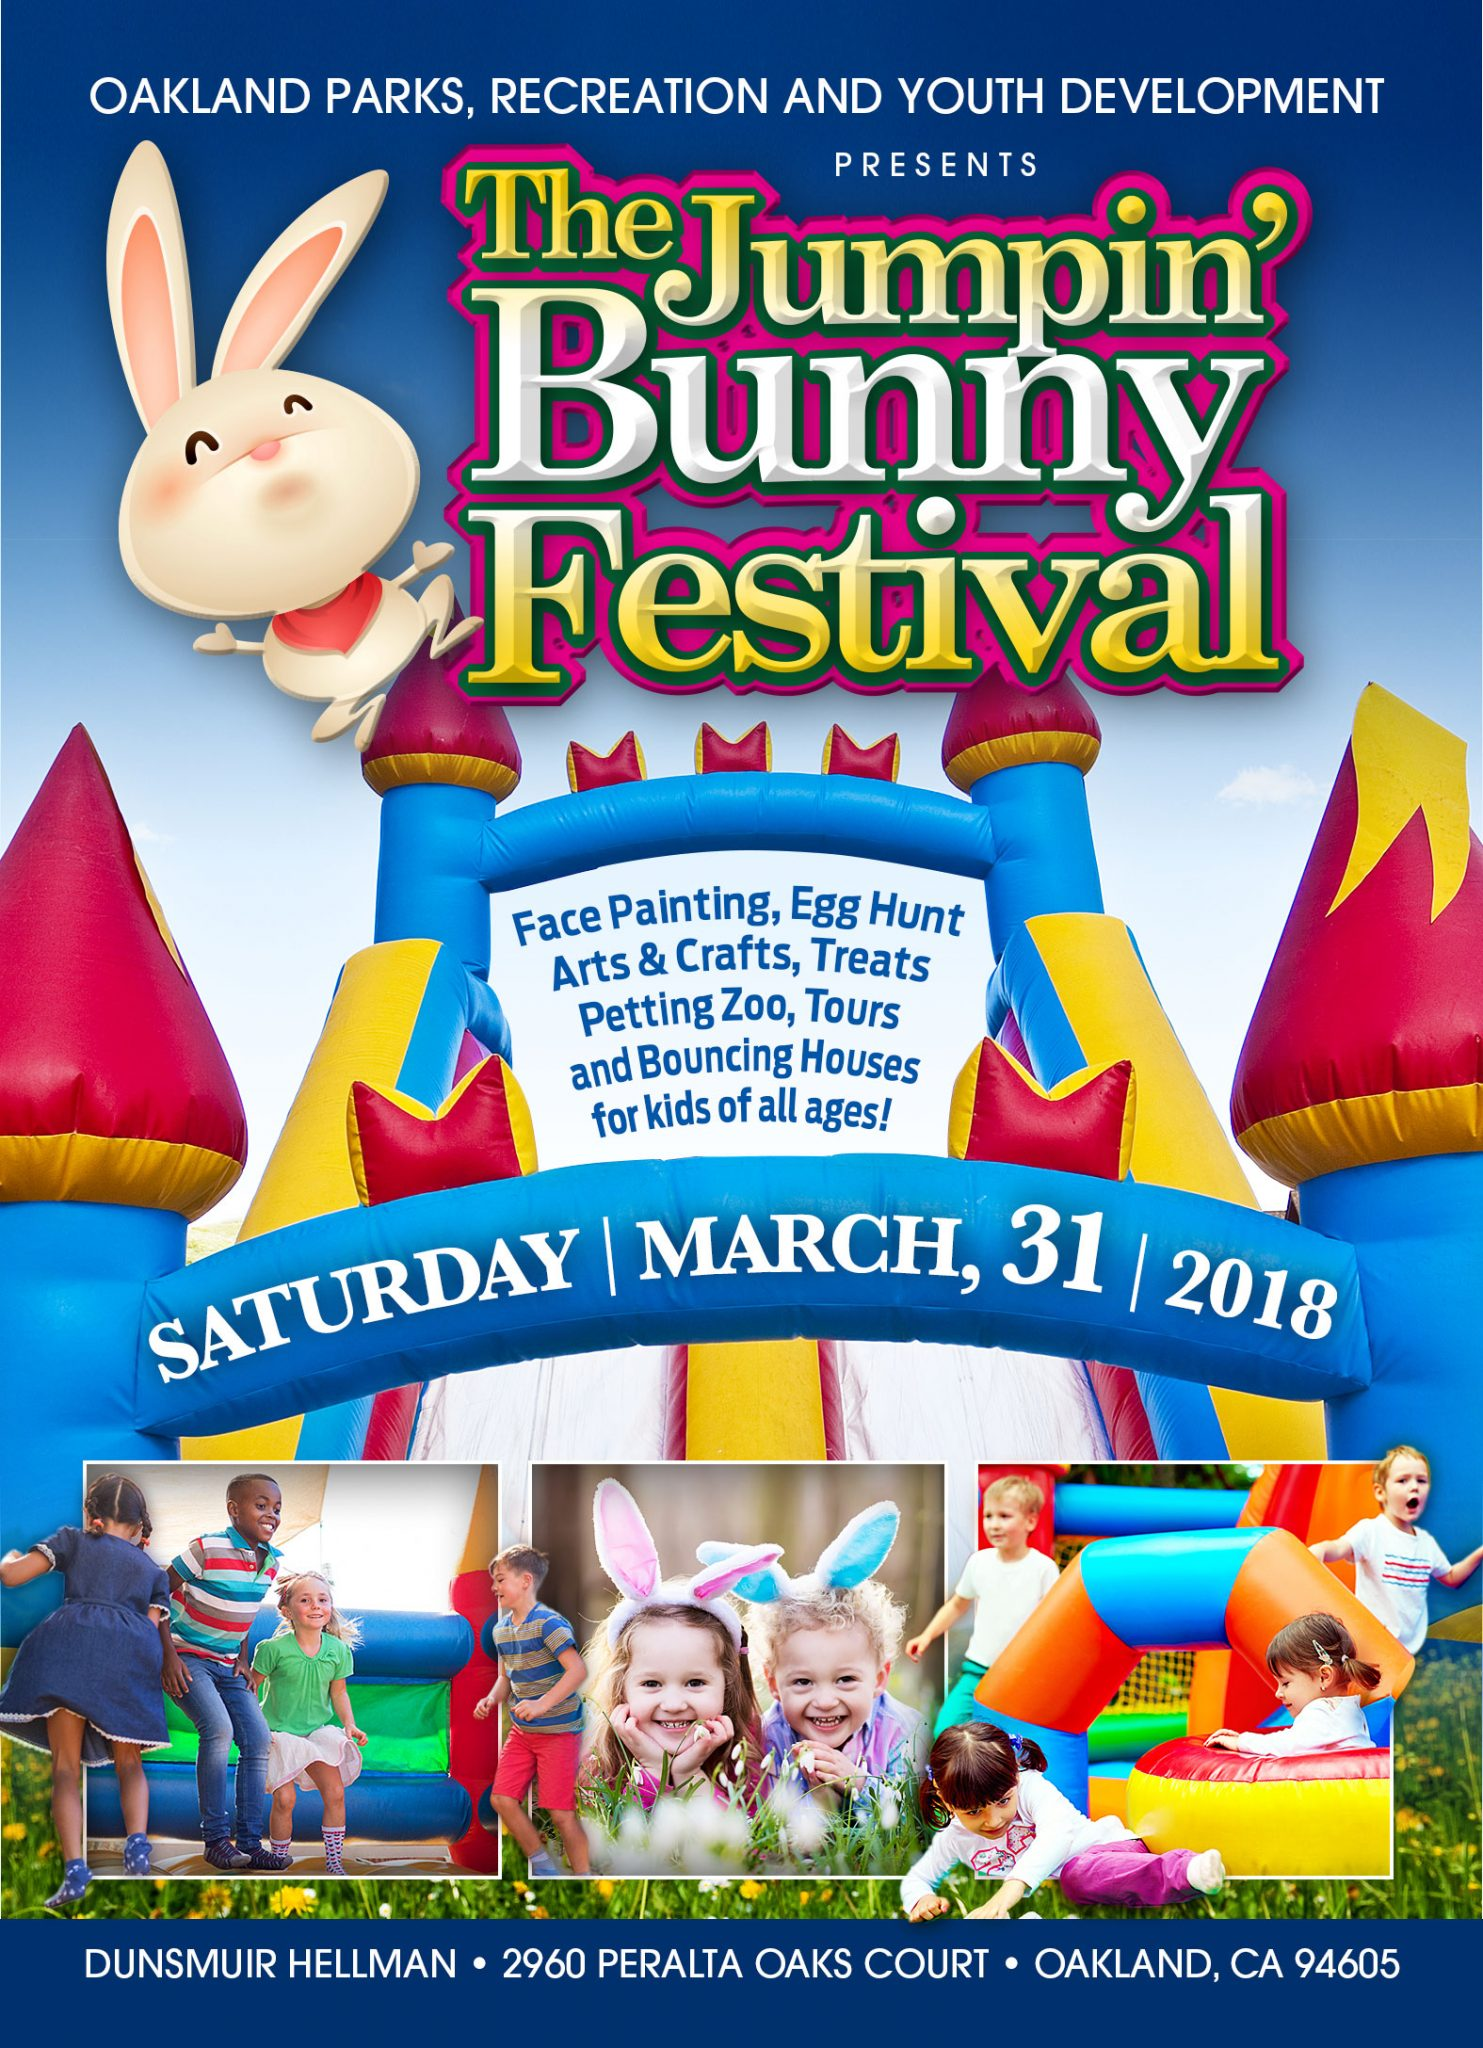 The Jumpin' Bunny Festival